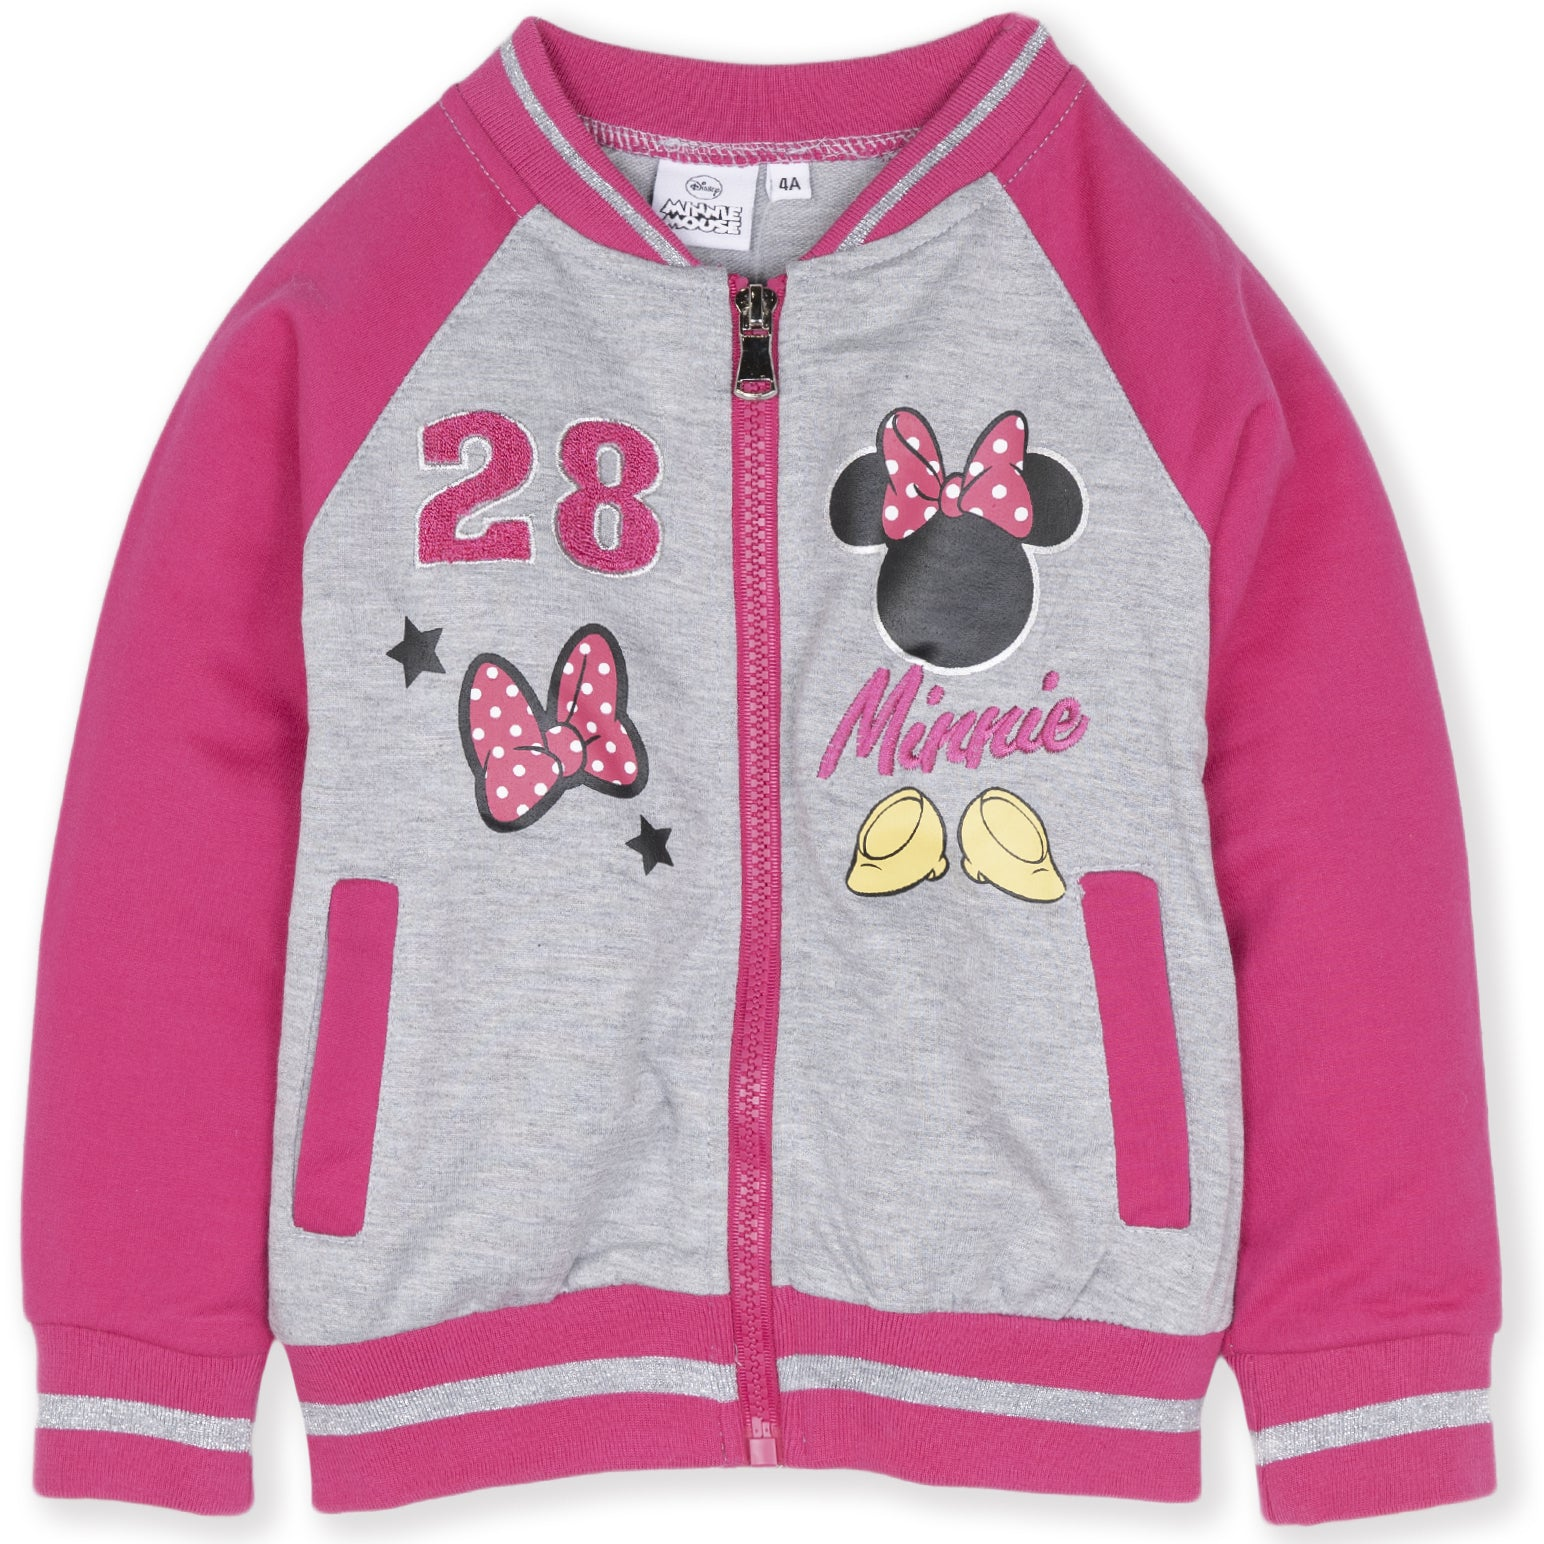 899404b8184a Disney Minnie Mouse Girls Baseball, Jumper Sweatshirt 2-8 Years - Fuchsia  ...